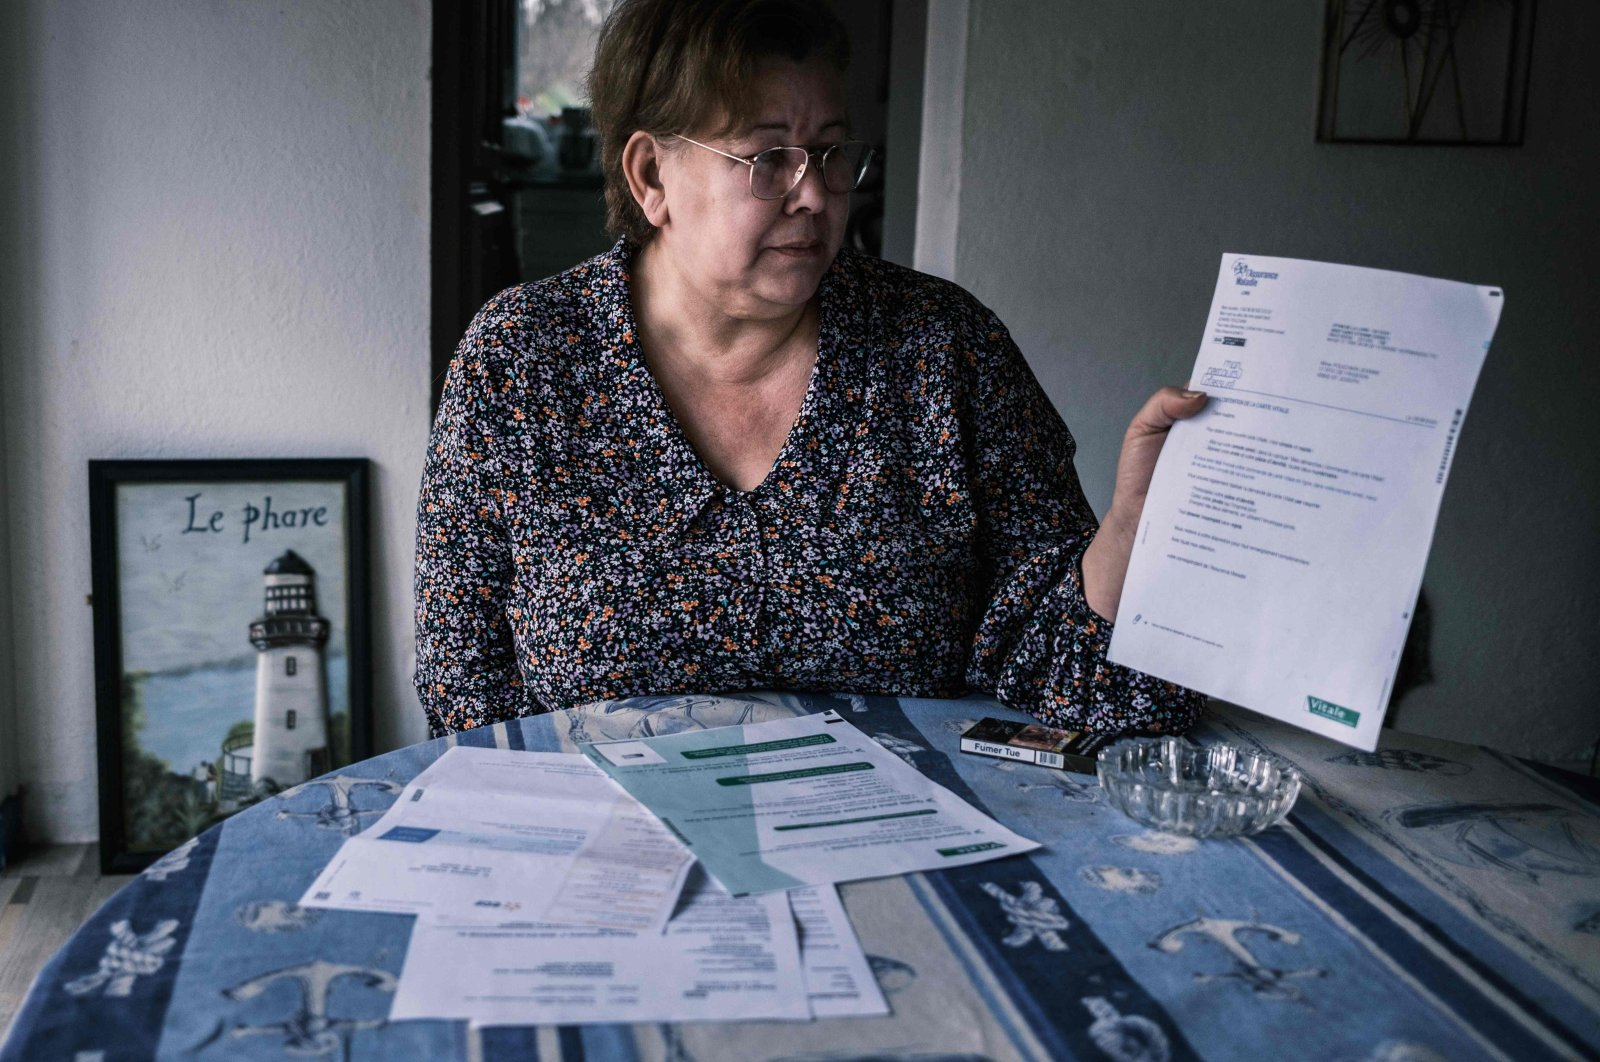 Jeanne Pouchain who, since November 2017, has been declared dead by the justice system after being convicted by the Prud'hommes, shows some paperwork, in Saint-Joseph, France, Jan. 8, 2021. (AFP Photo)